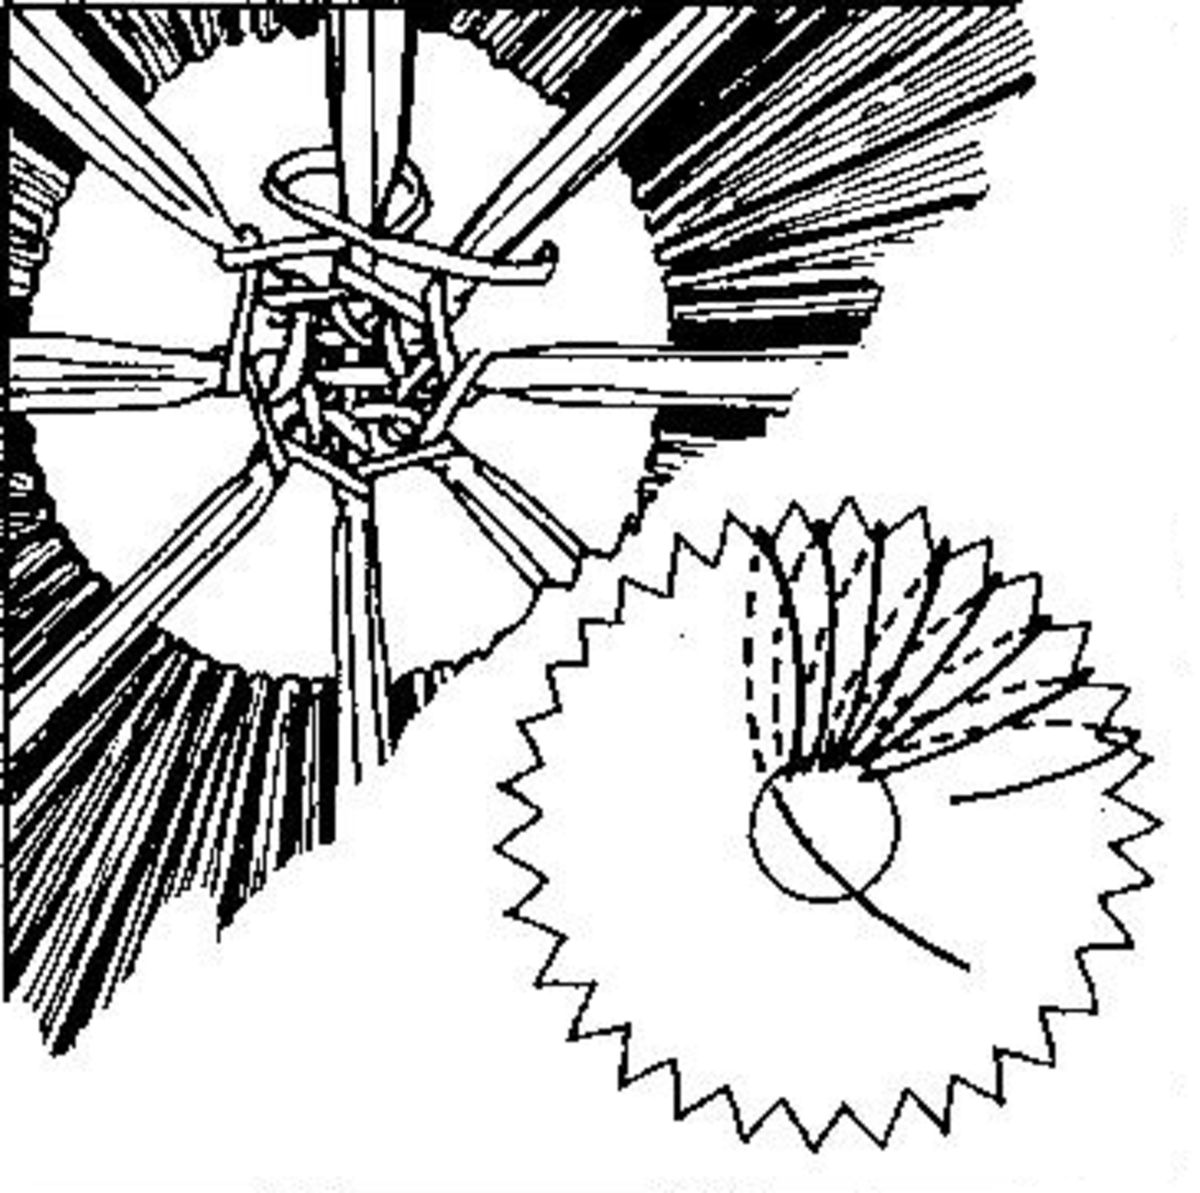 Figure 1 - Shows how to Fill in Center                                       Figure 2 - Winding raffia on serrated card loom